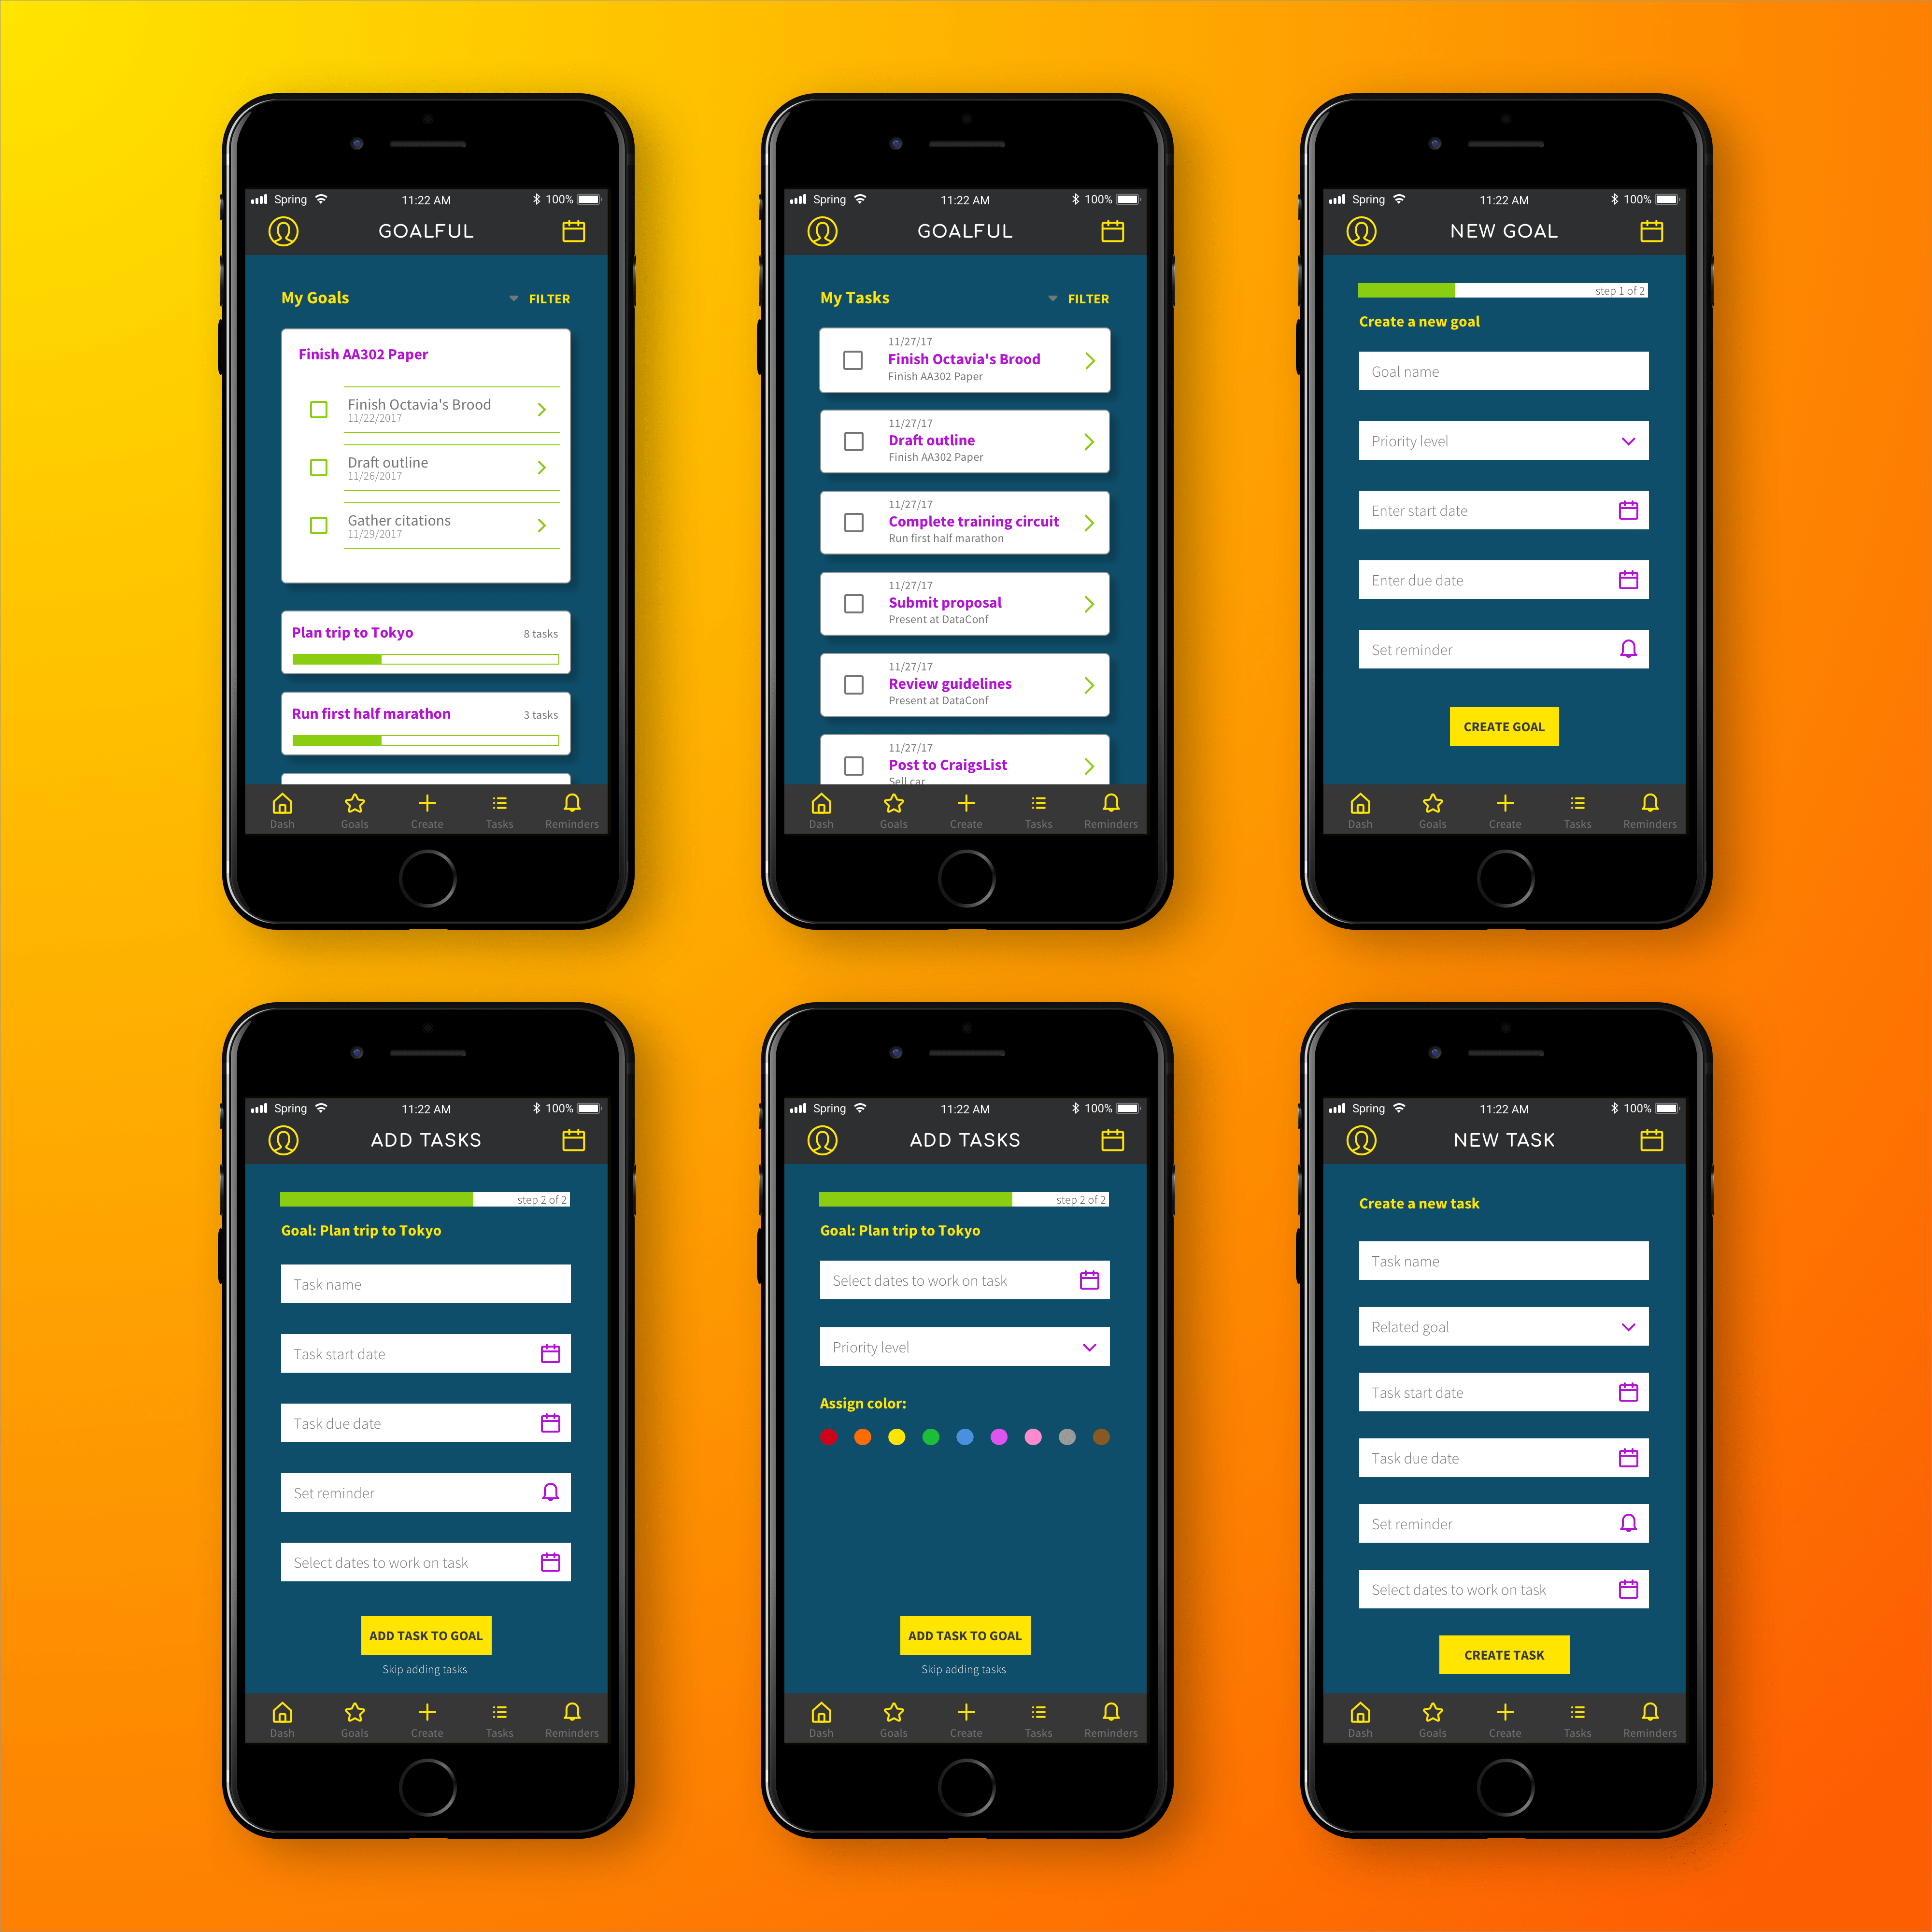 Set of six high-fidelity, full-color mockups of the application's key screens, including dashboard views, and screens for adding goals and tasks.